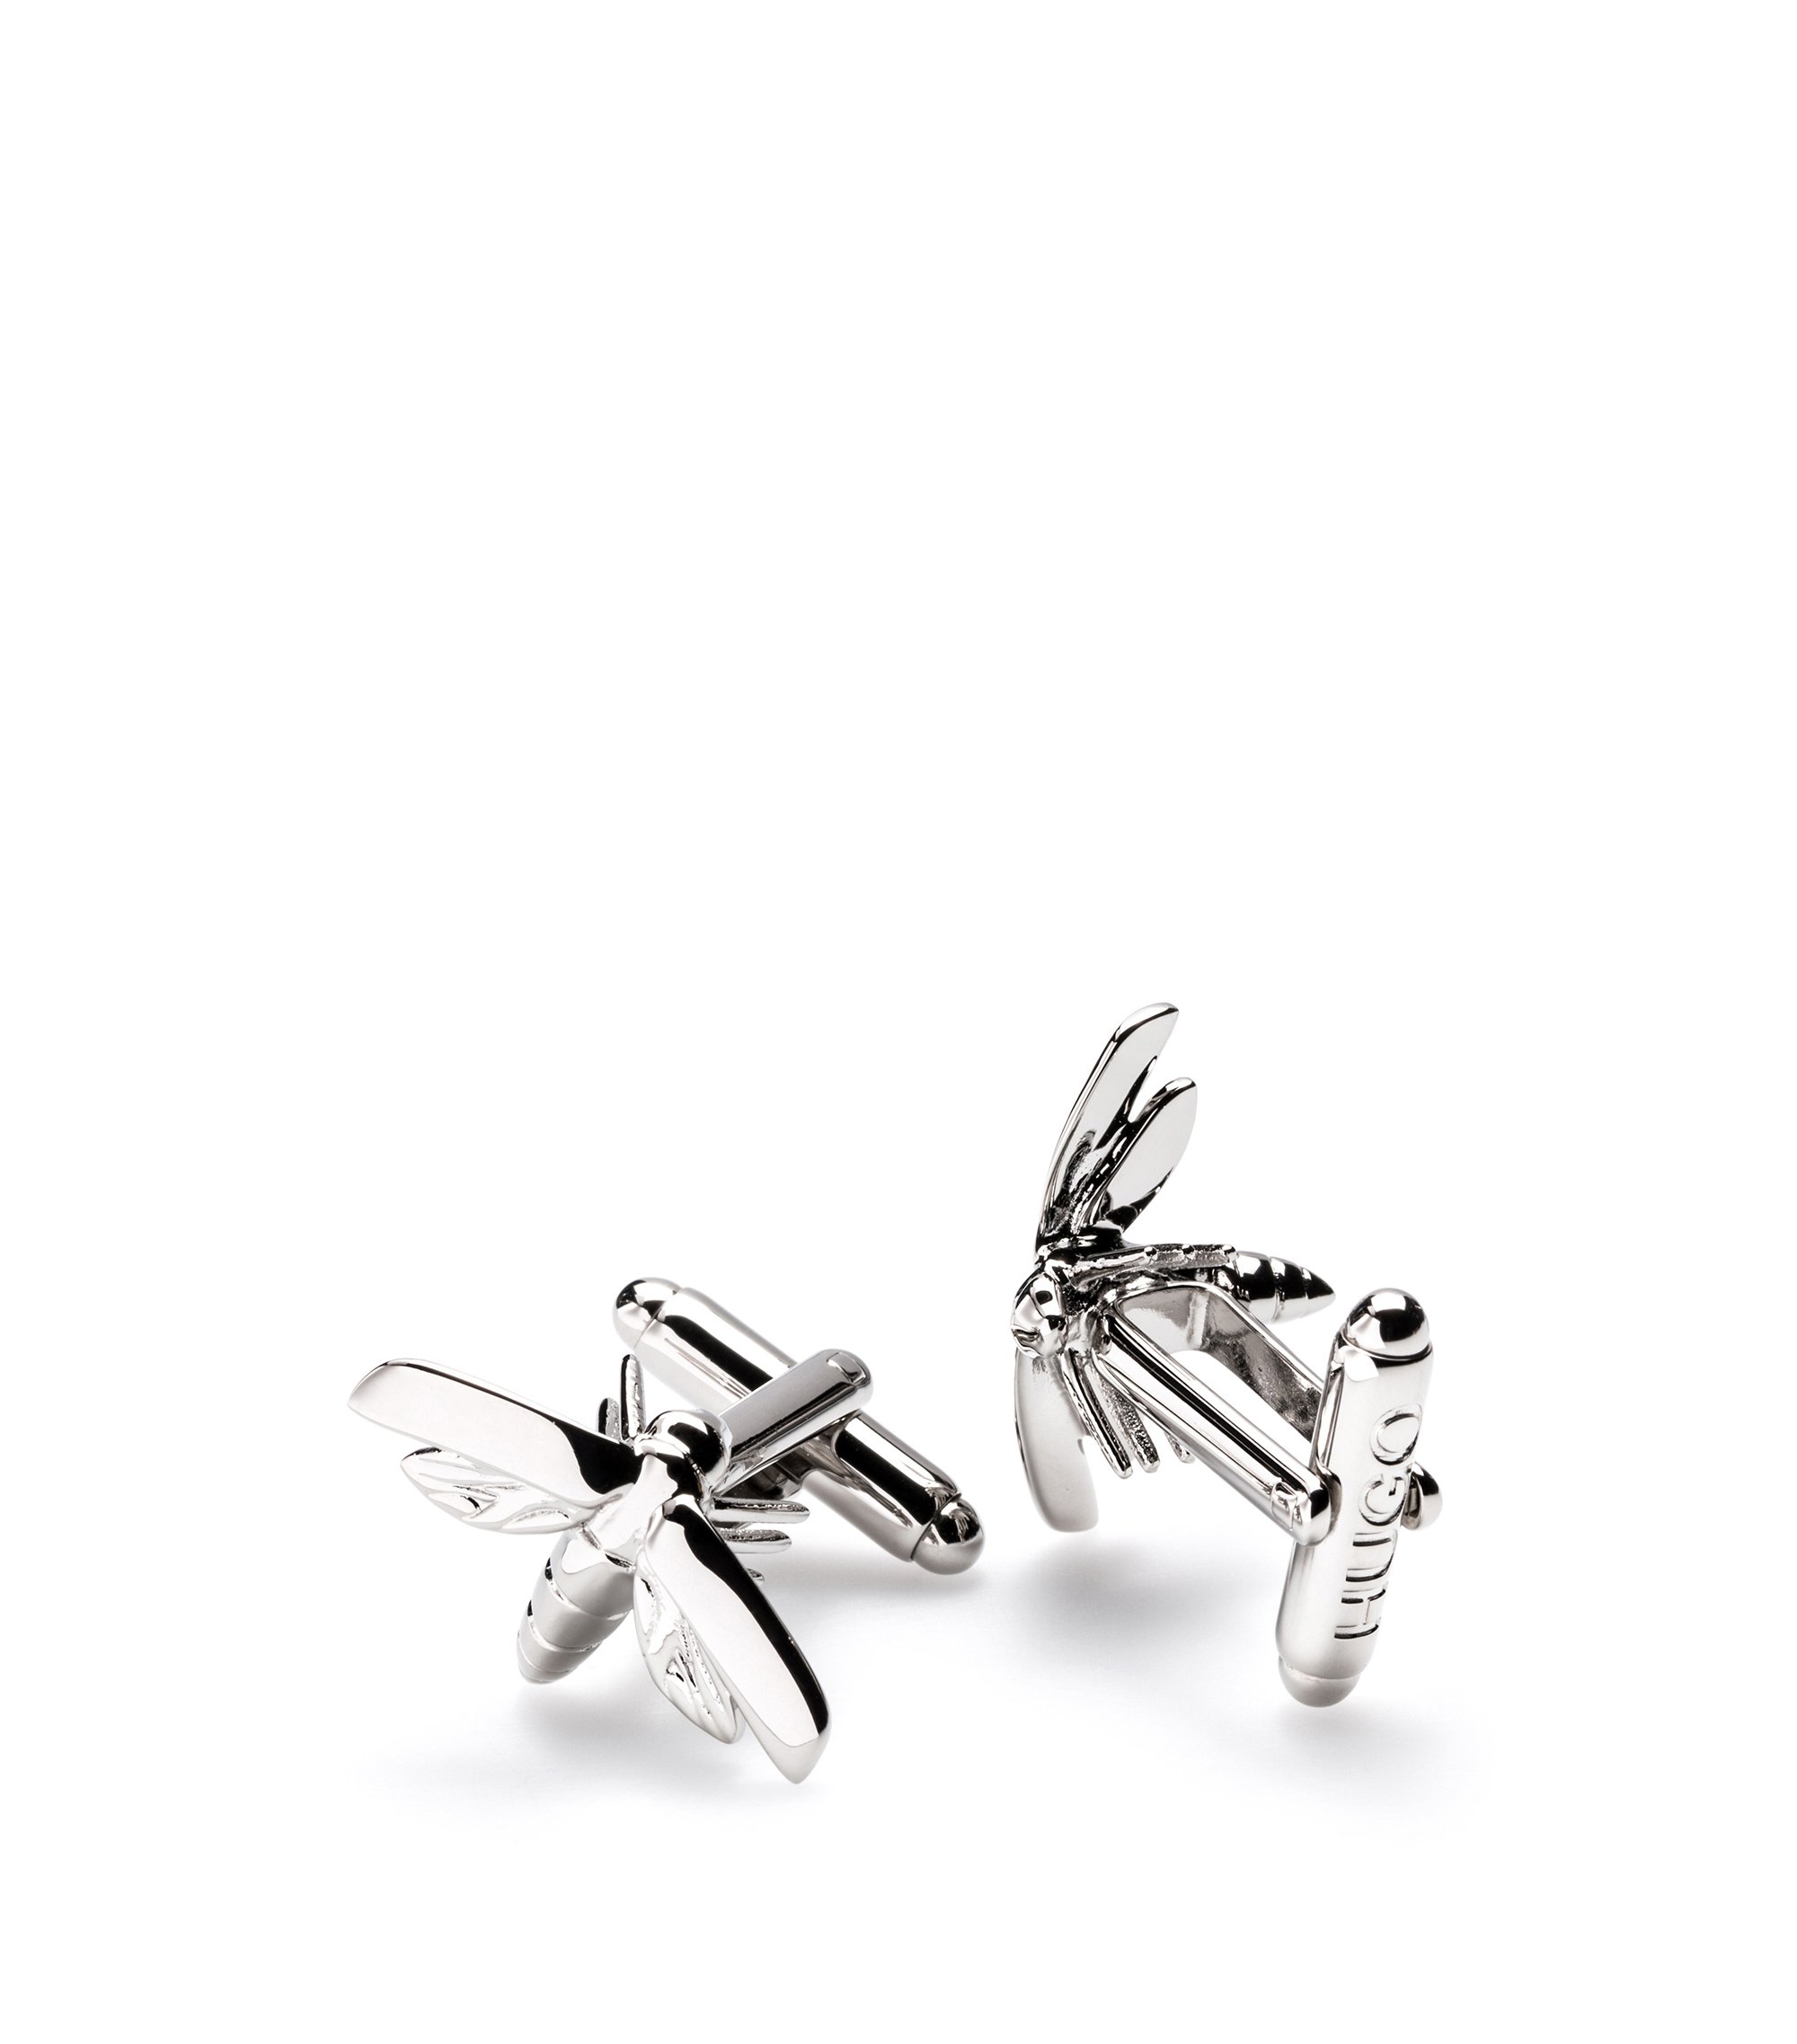 Firefly cufflinks in polished metal, Silver